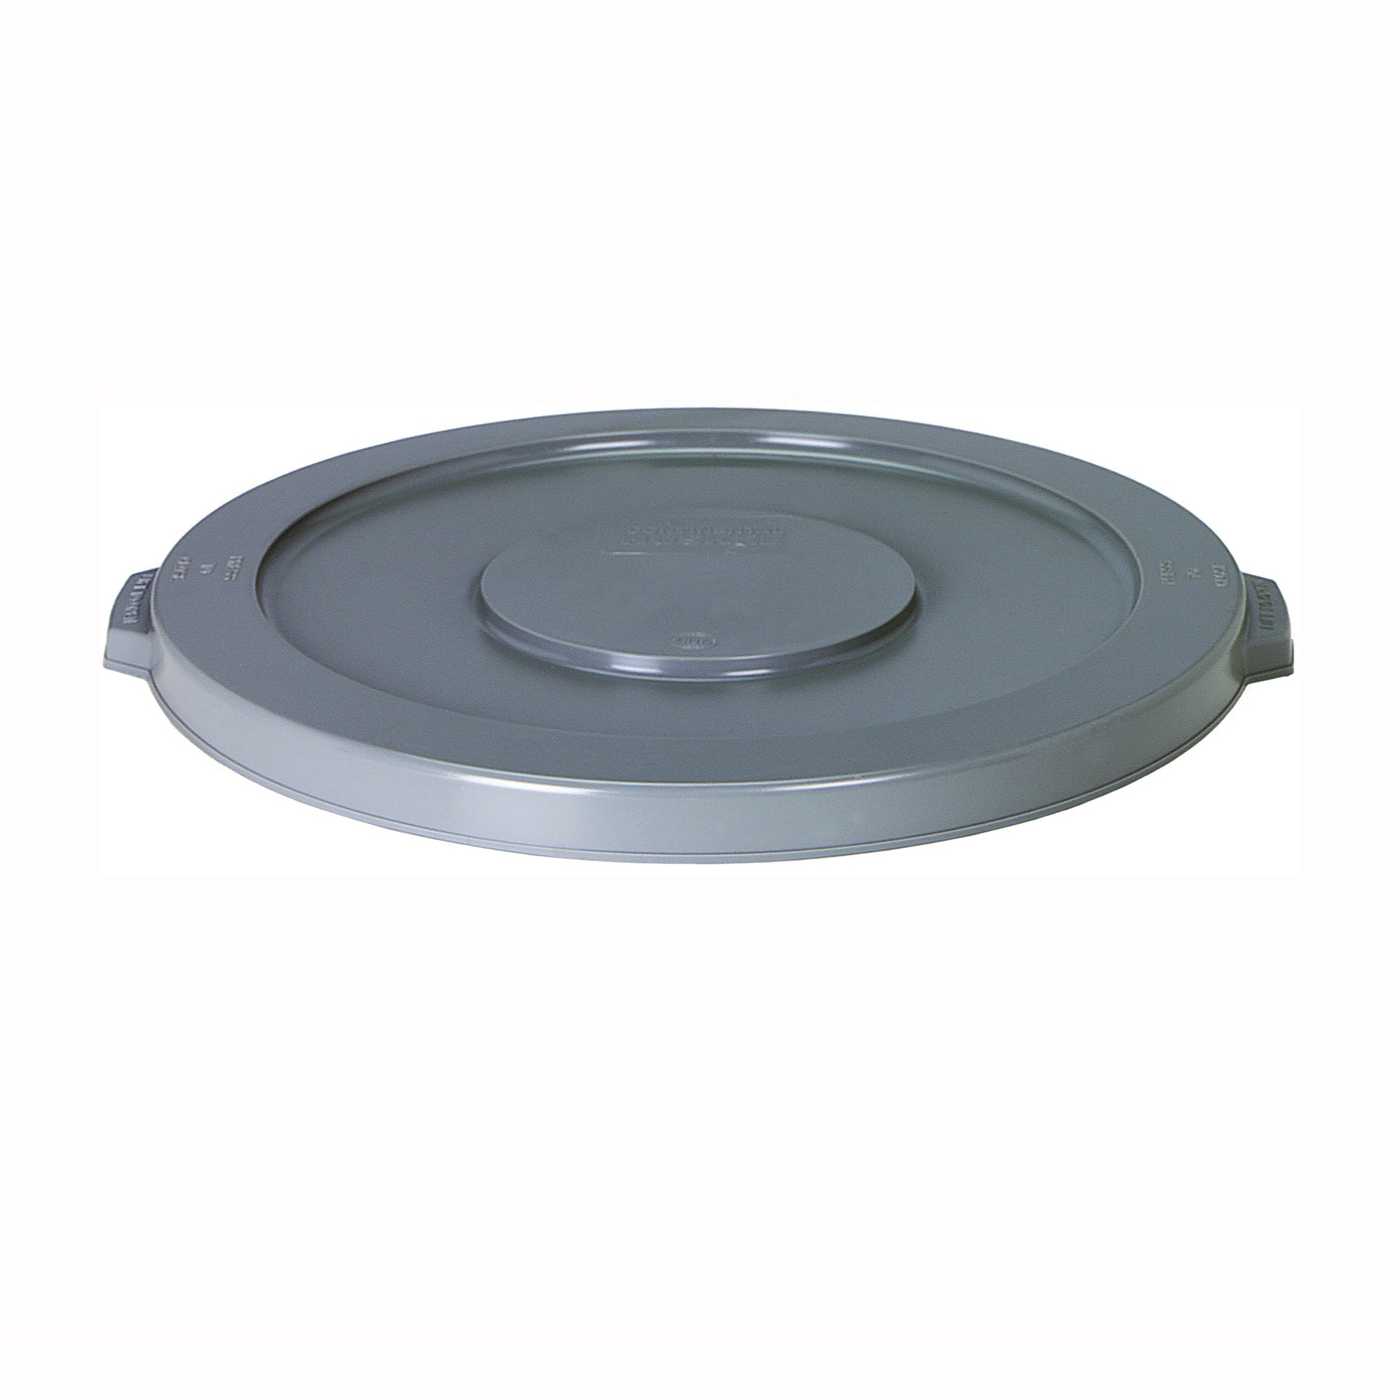 Picture of CONTINENTAL COMMERCIAL Huskee 5501GY Receptacle Lid, 55 gal, Plastic, Gray, For: Huskee 5500 Container